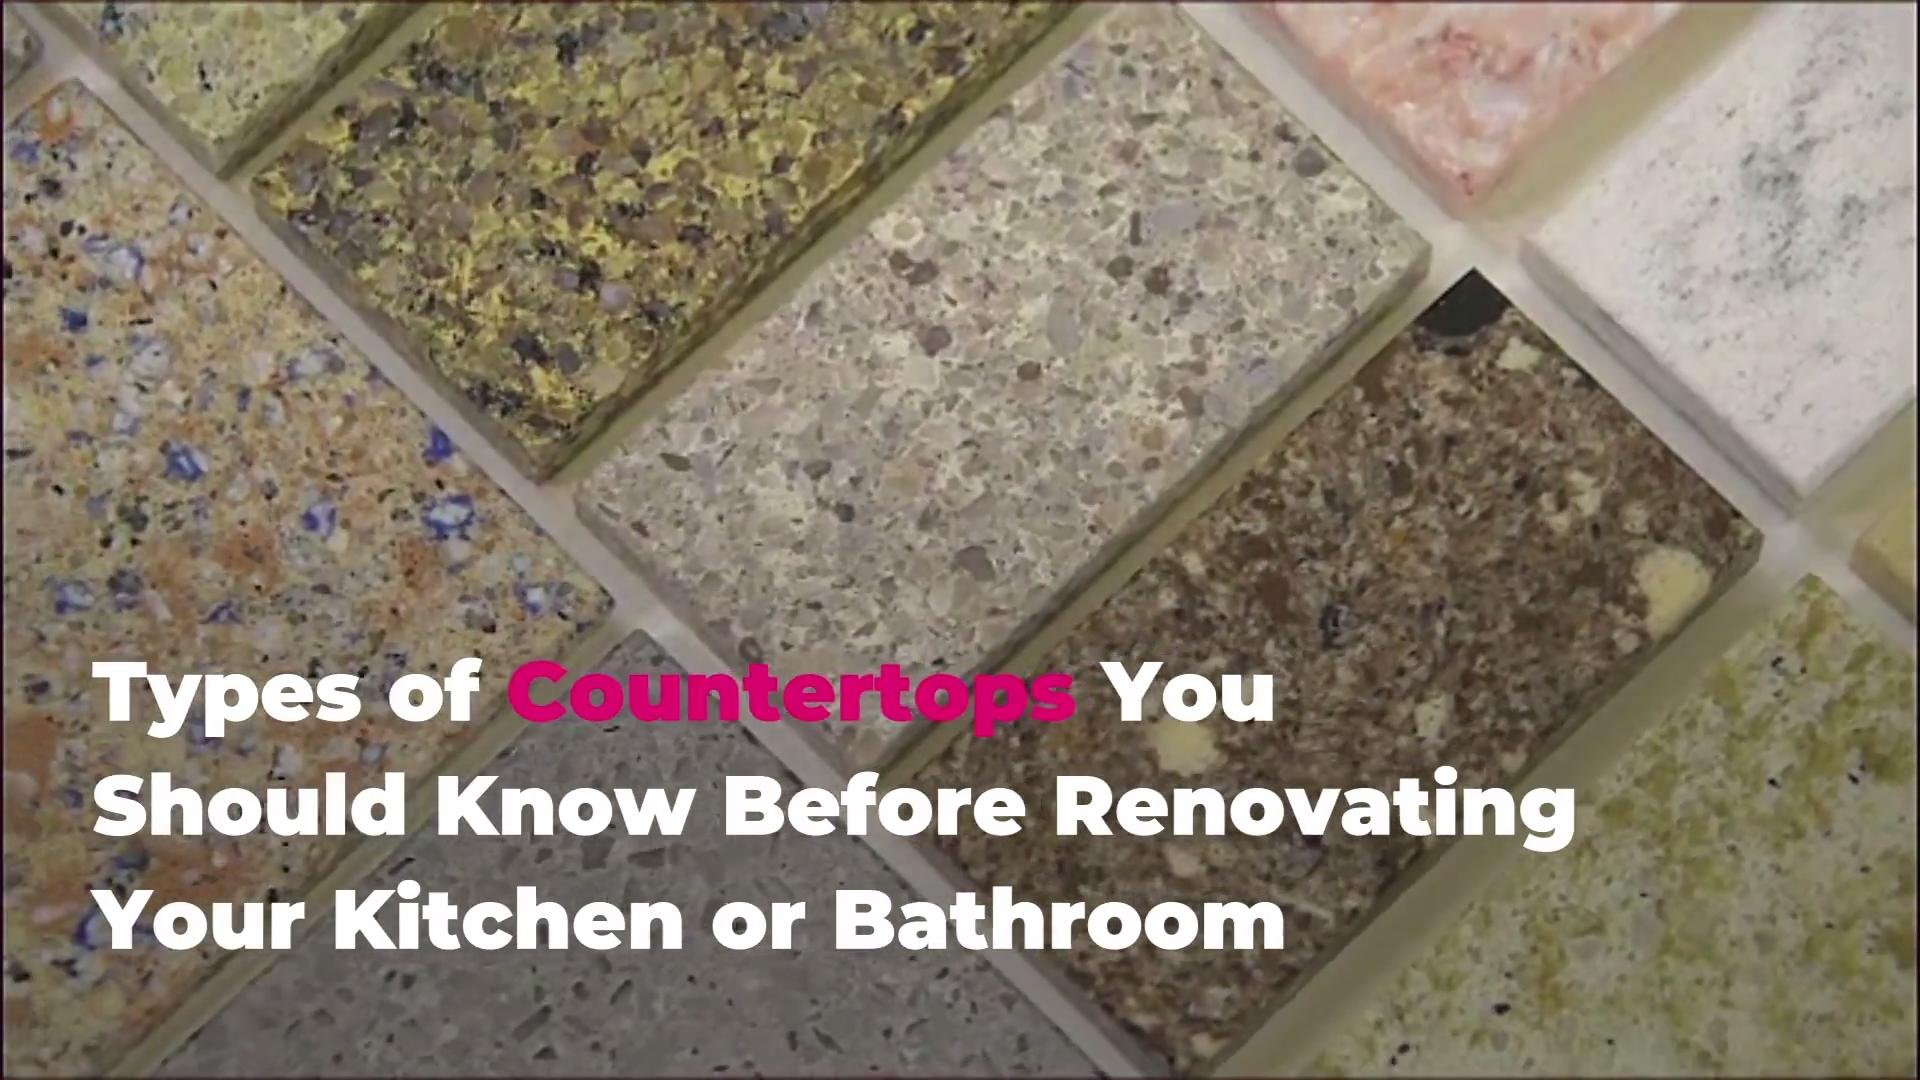 10 Types Of Countertops To Know Before Your Renovation Real Simple